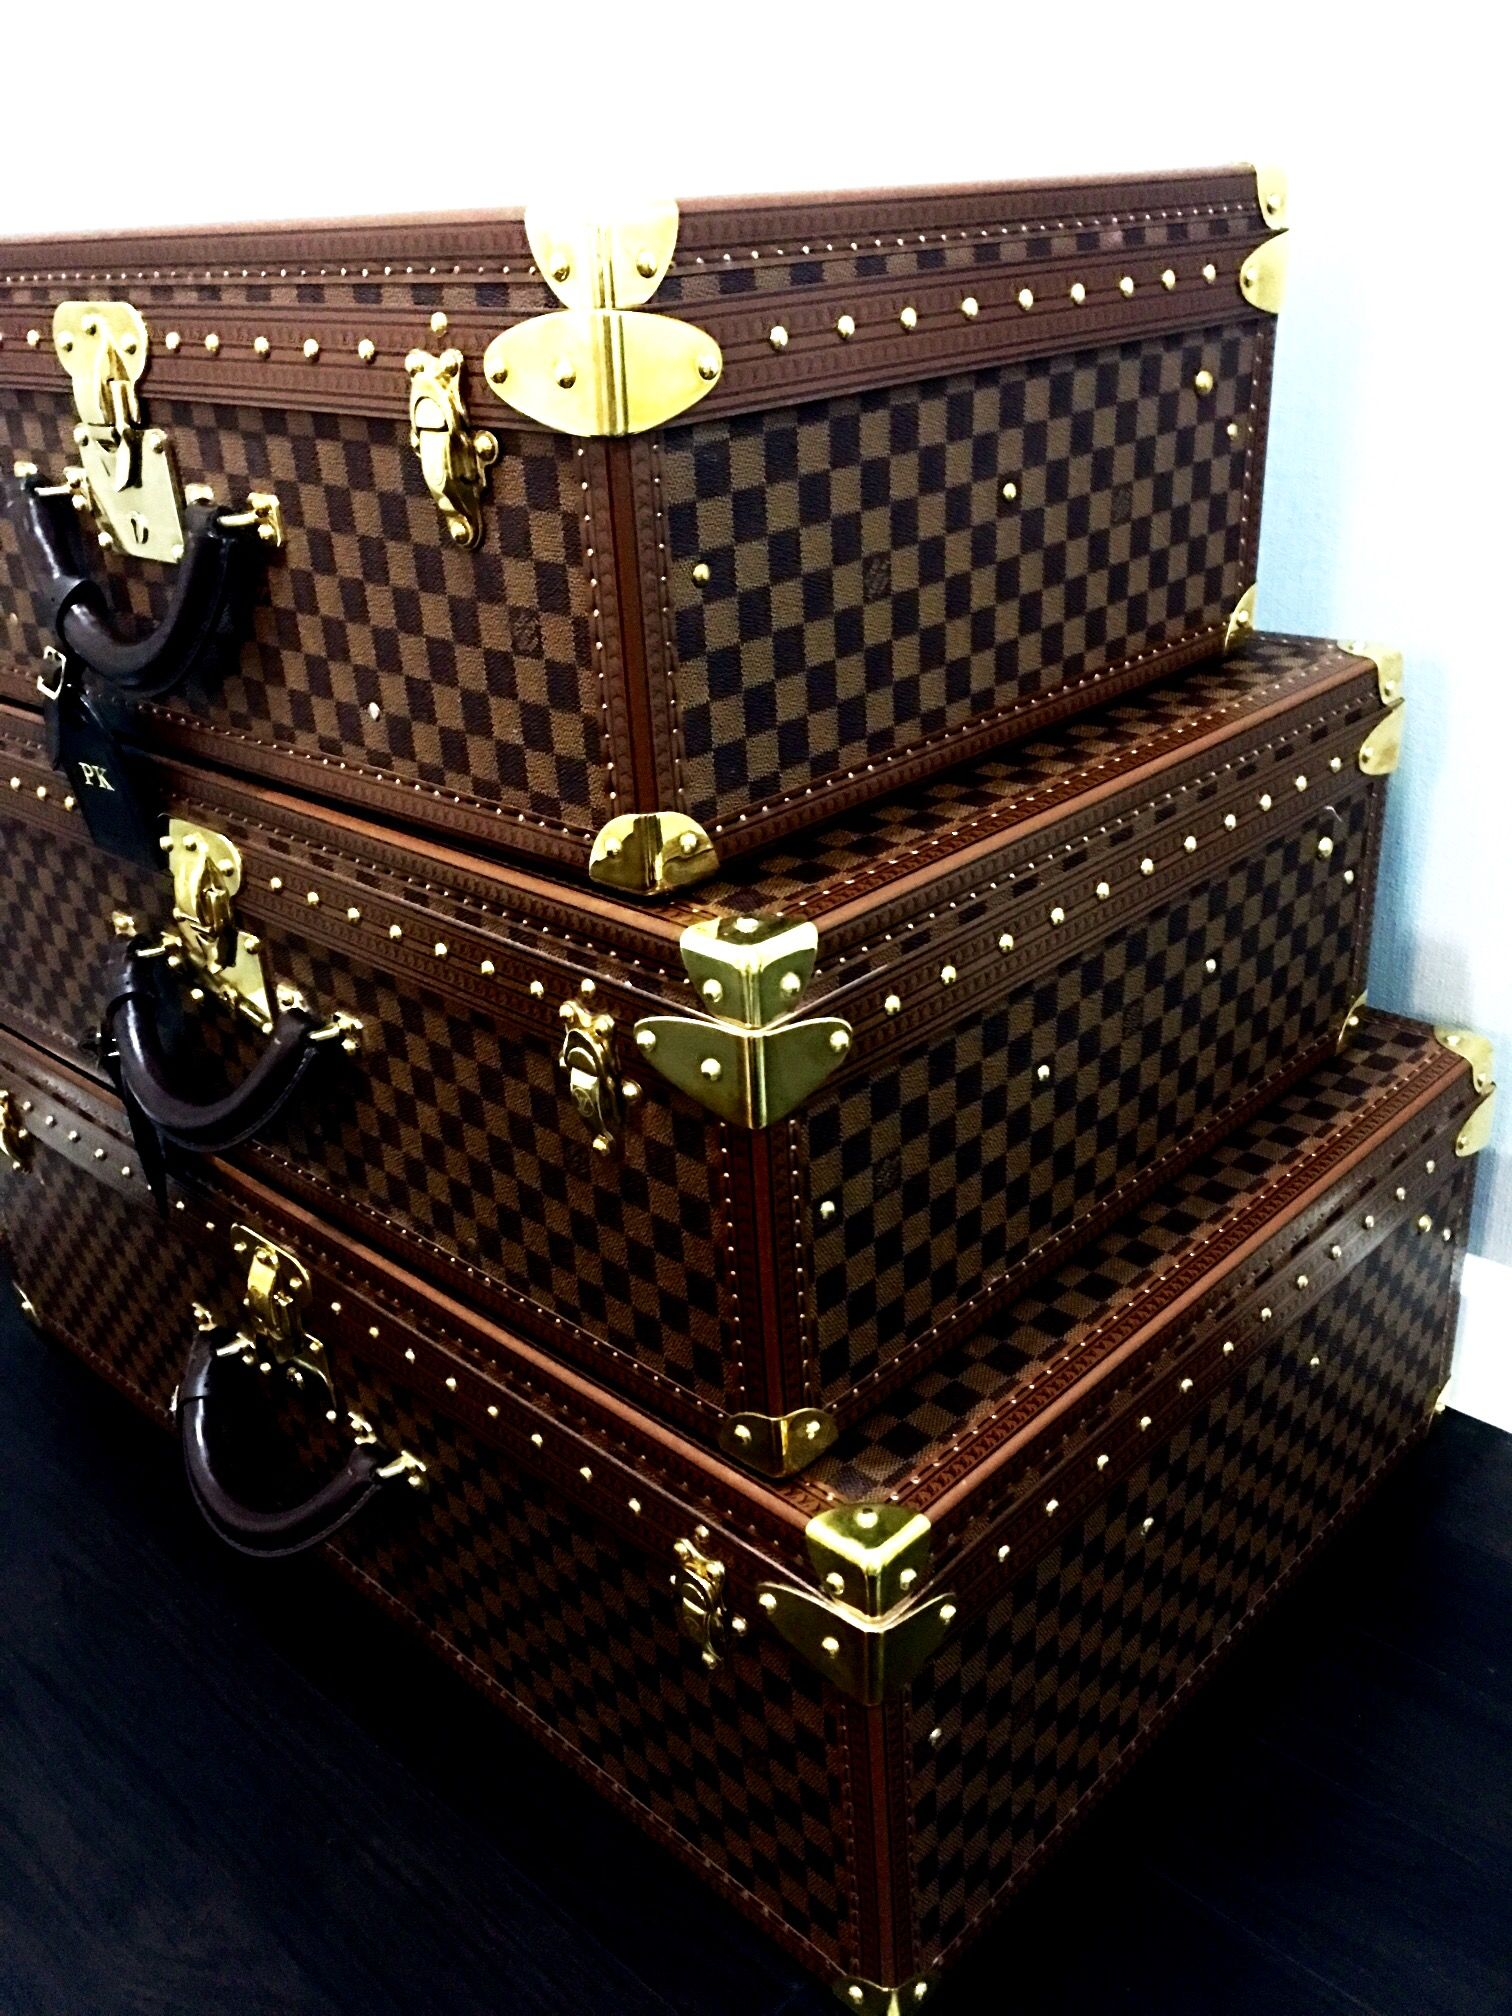 575589bb941 Louis Vuitton Hardside luggage. Alzer 60.70.80 Damier. KOS home ...